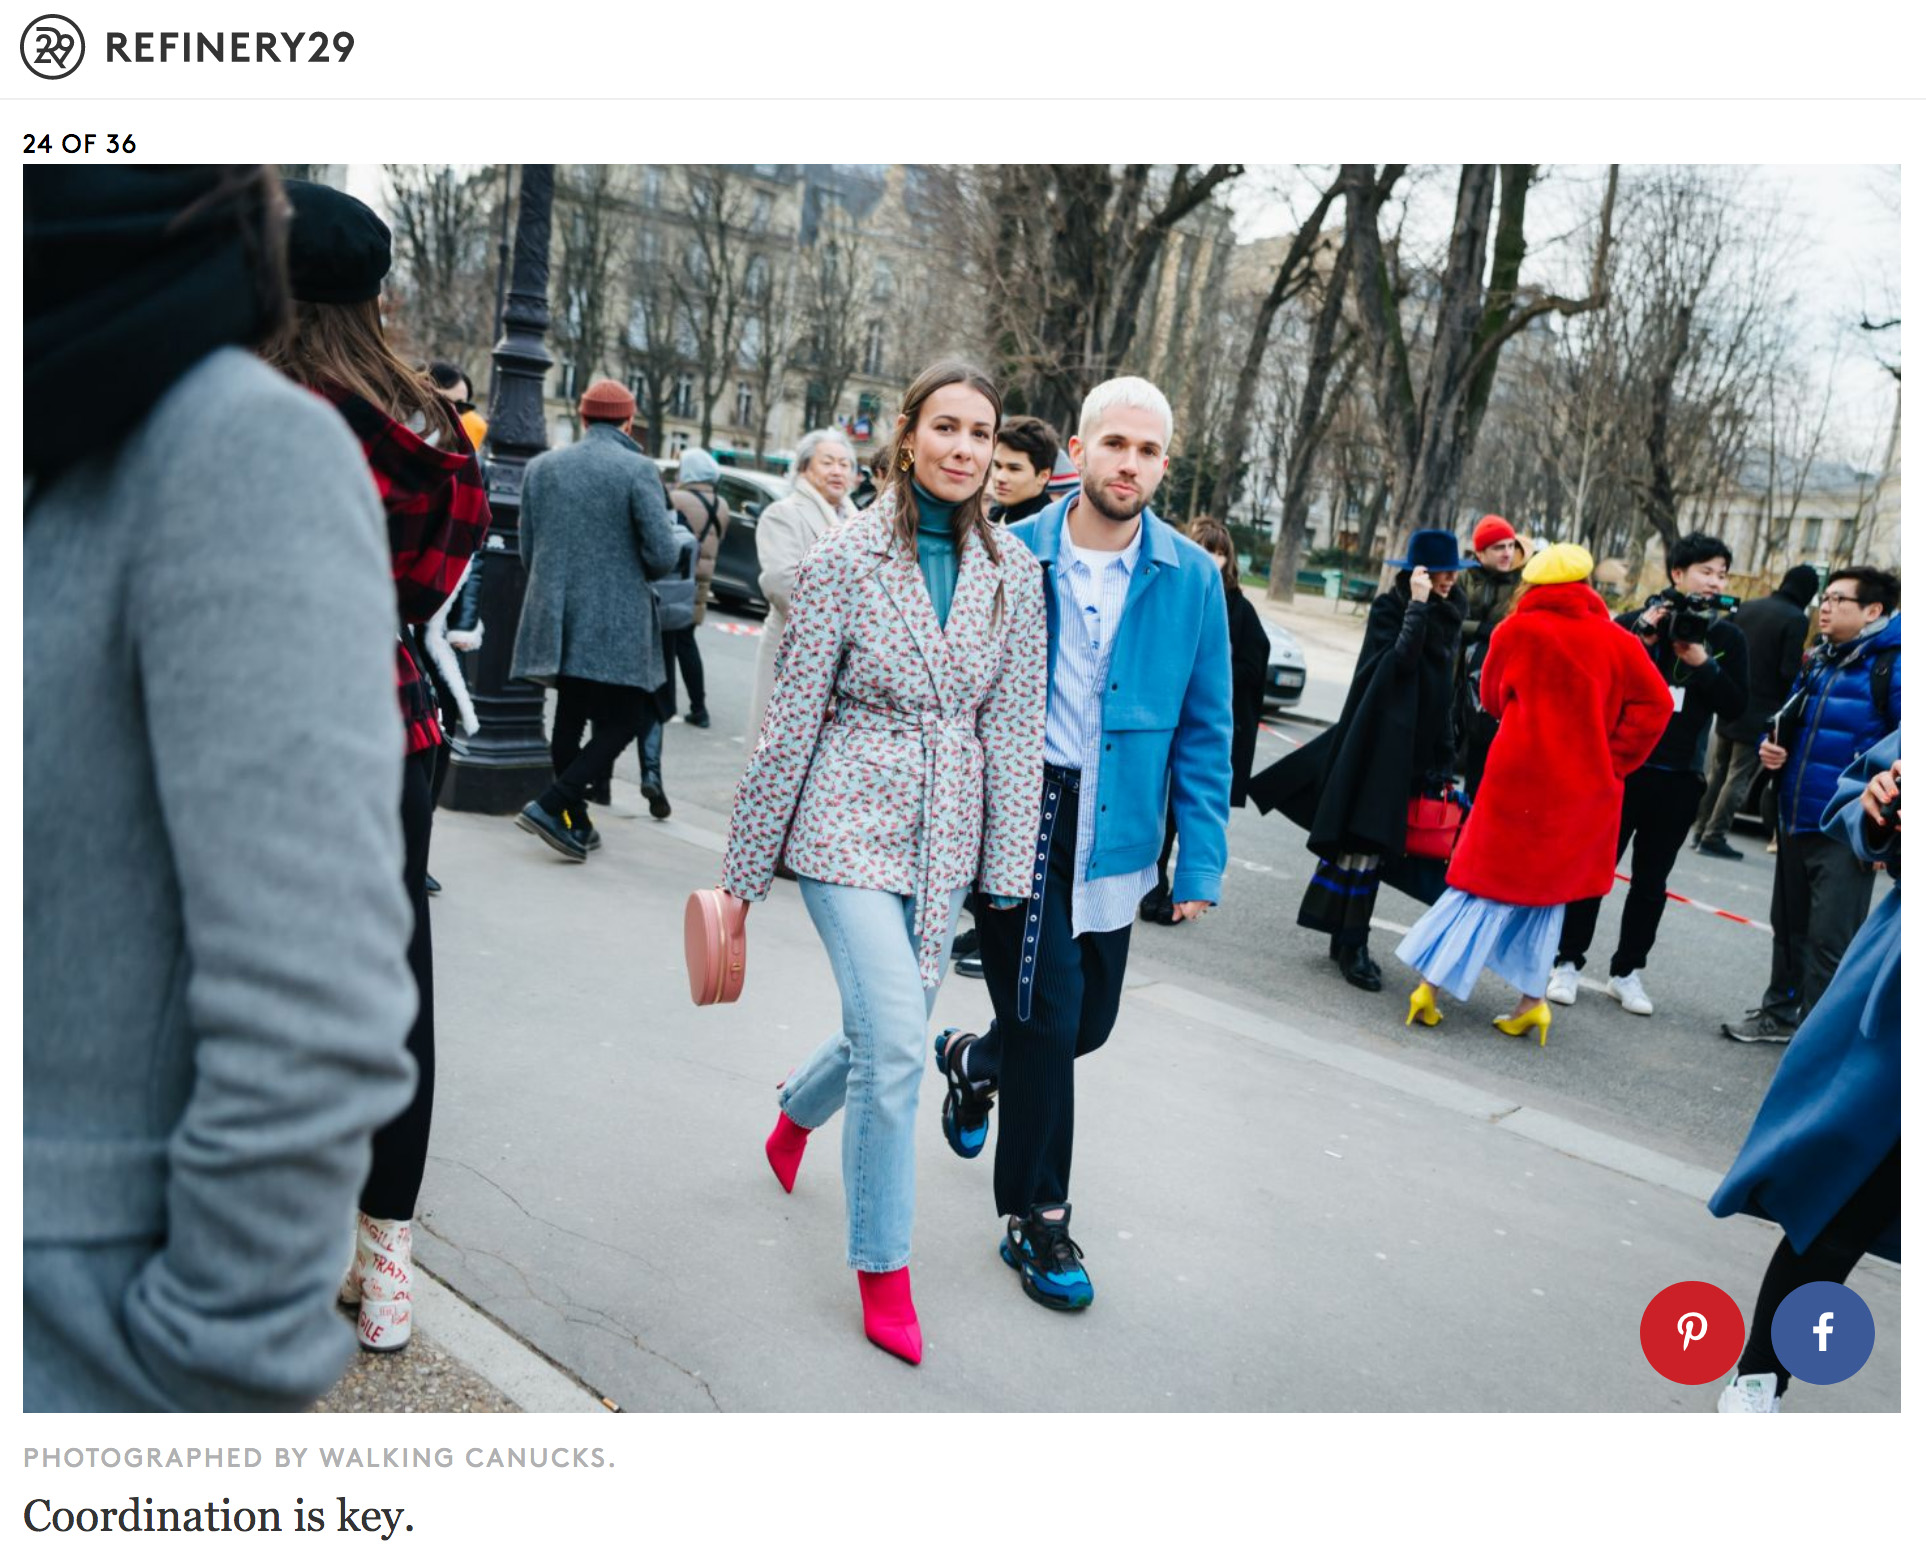 refinery 29 walking canucks street style